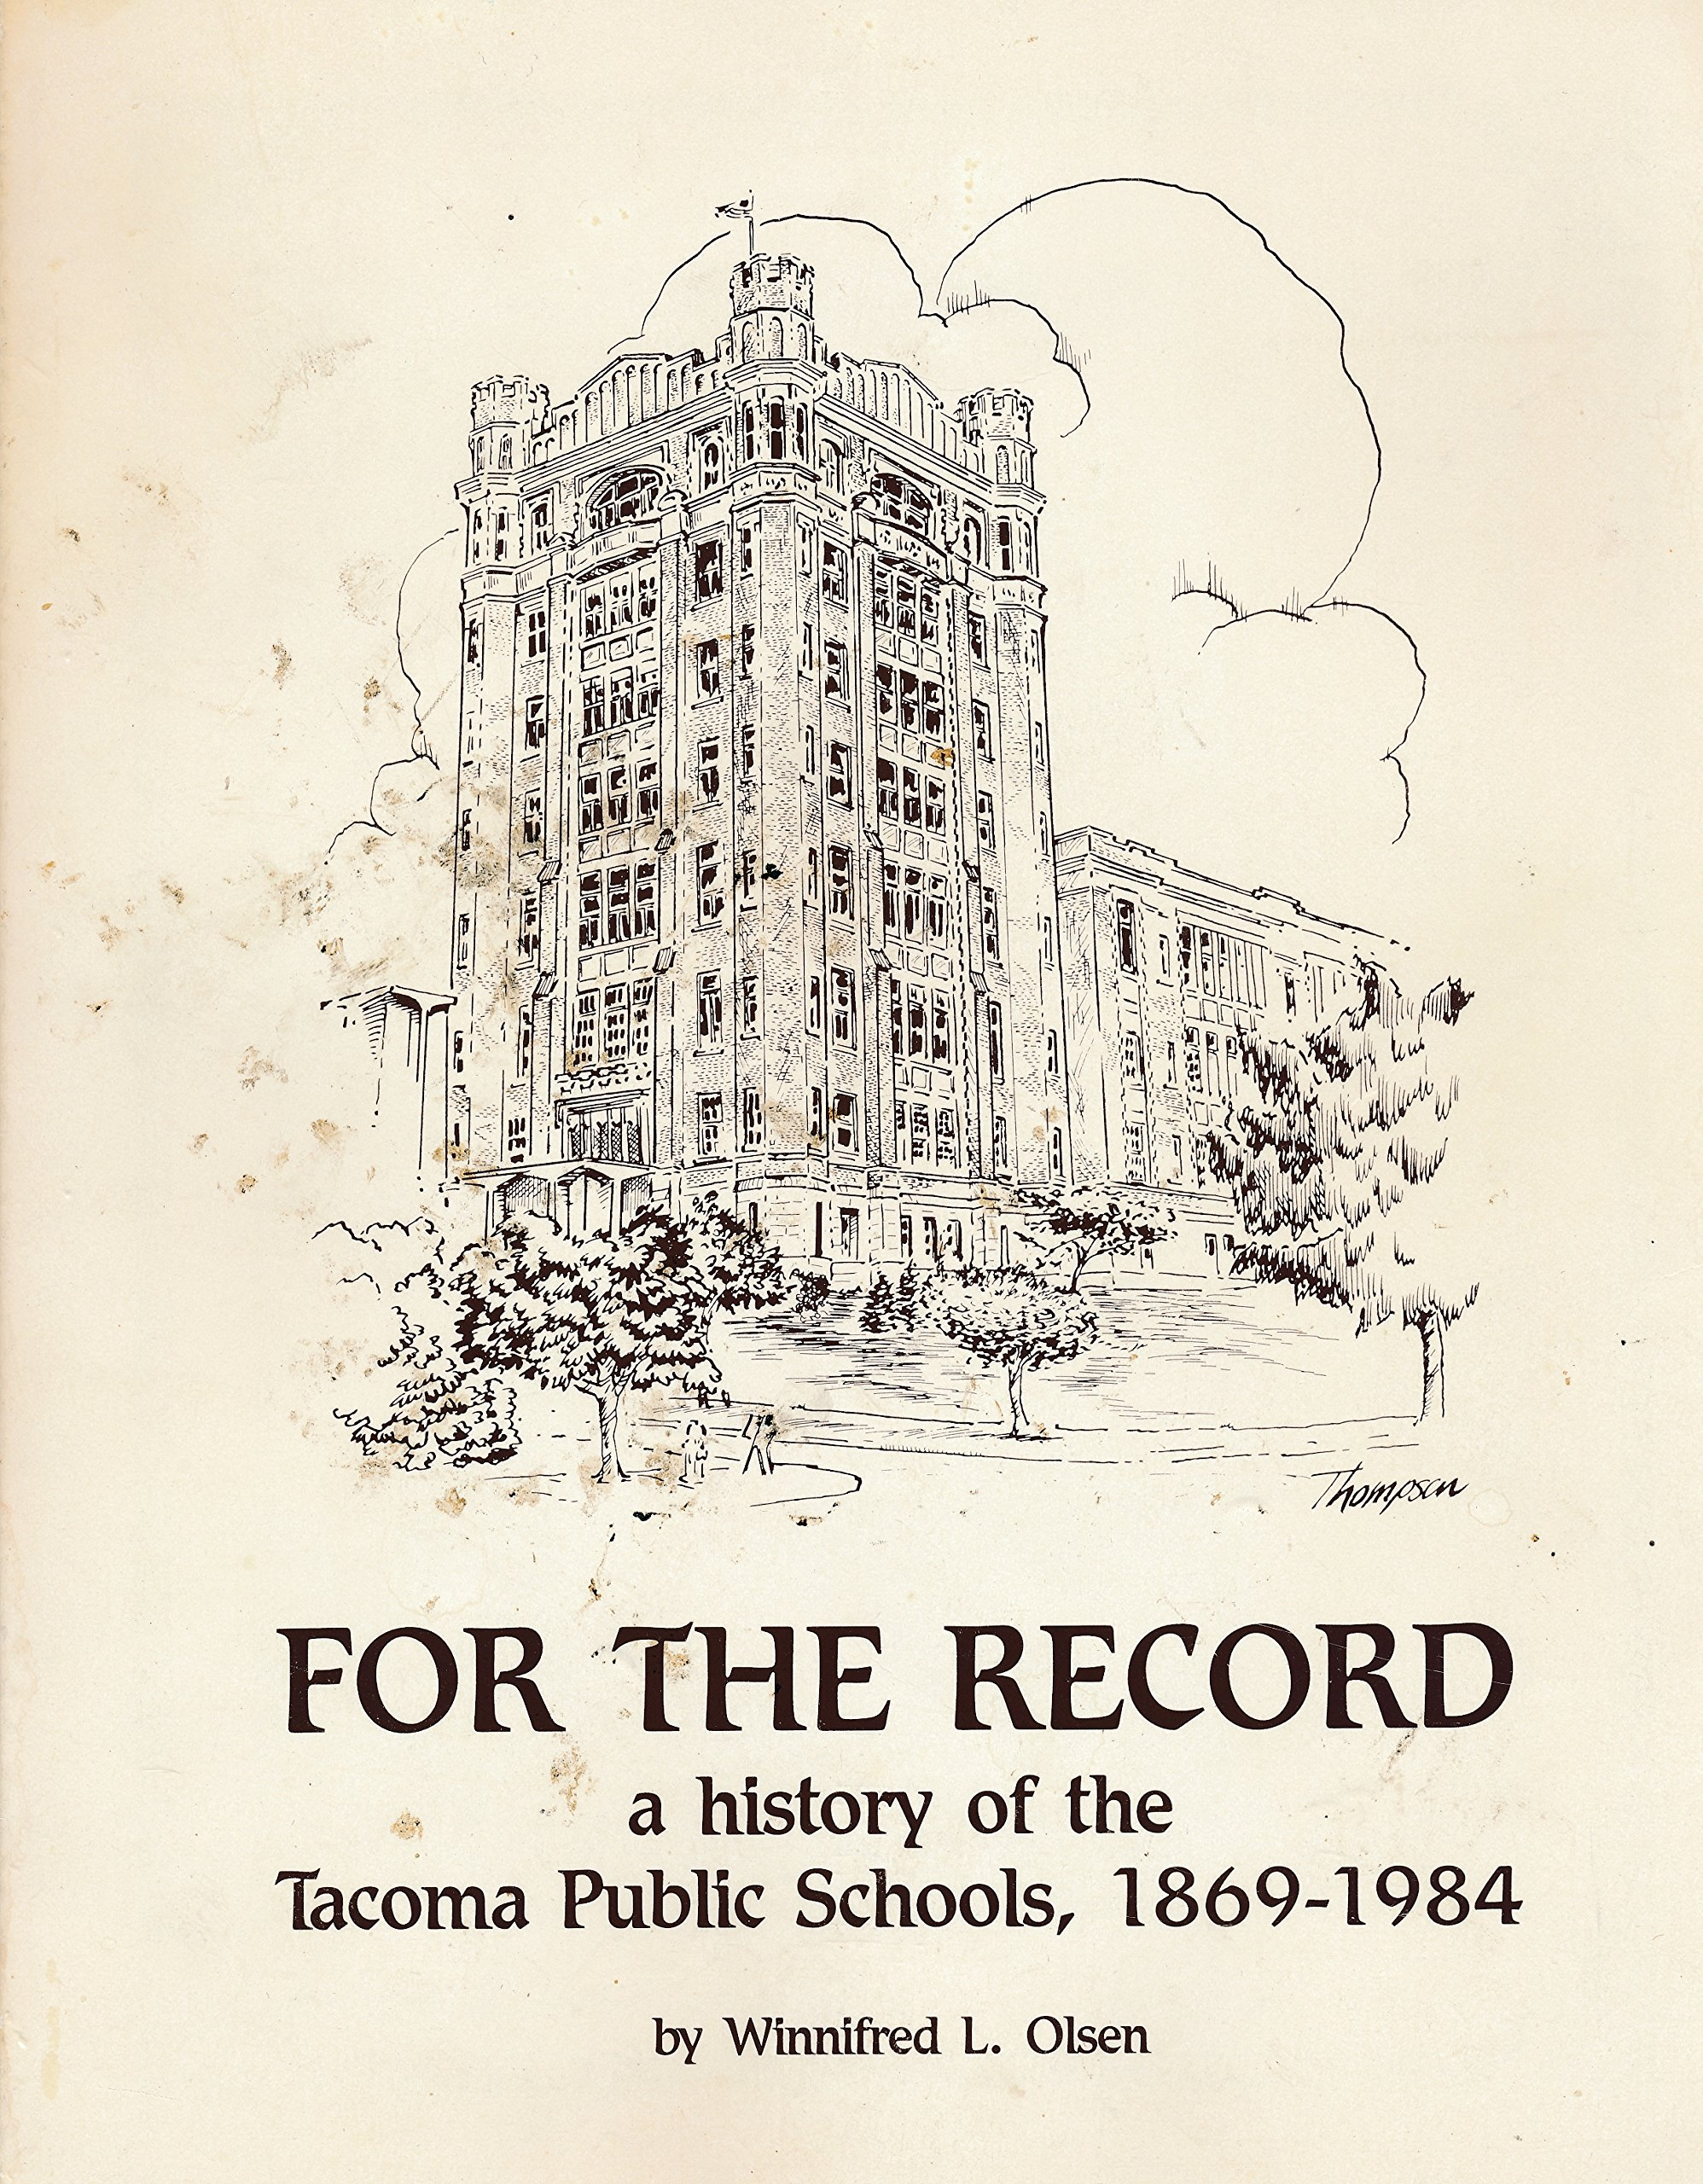 For the Record: A History of the Tacoma Public Schools, 1869